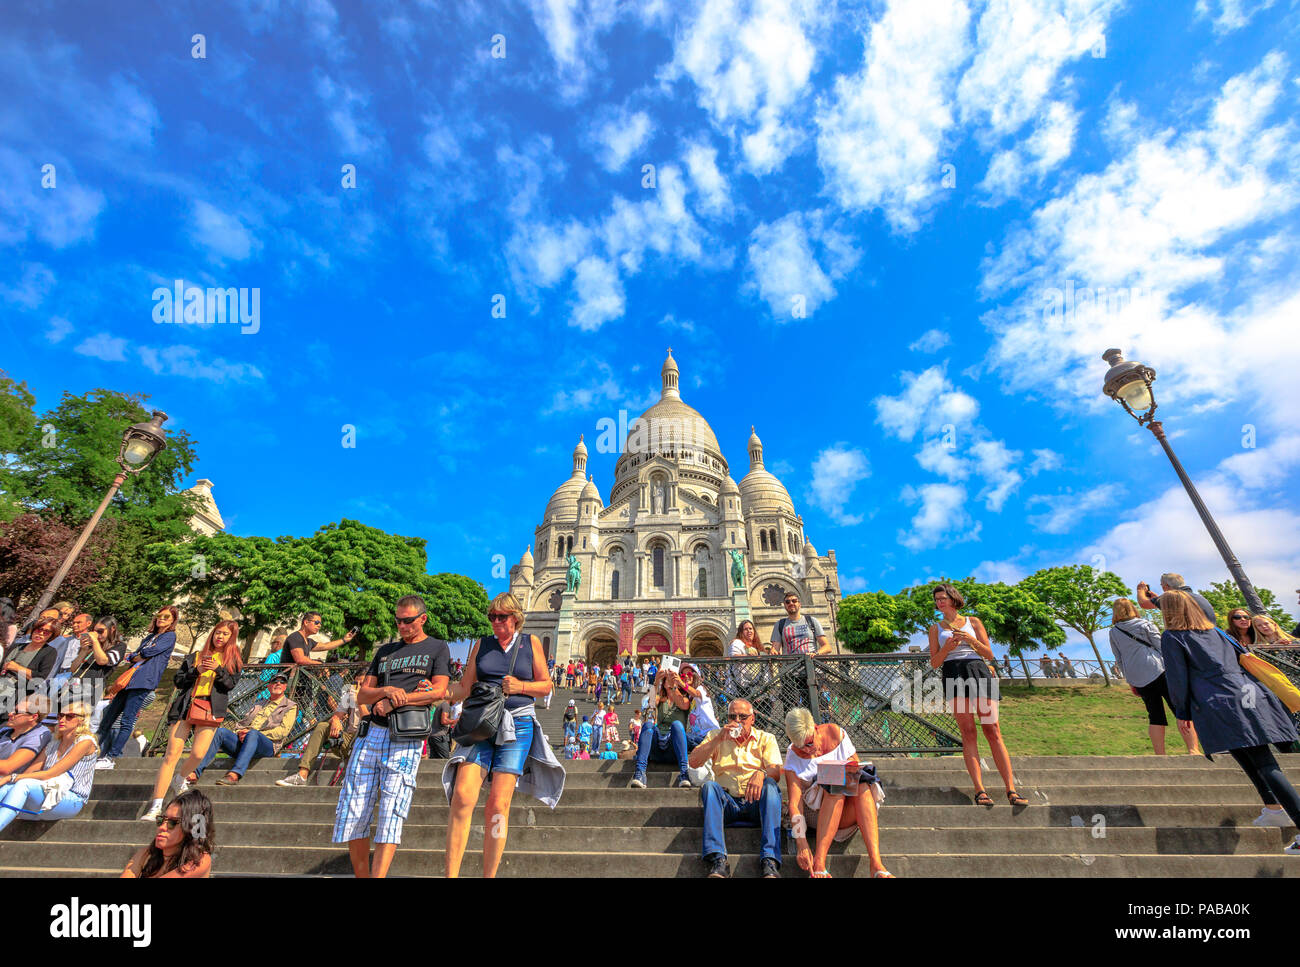 Paris, France - July 3, 2017: many people on the stairs of Basilica of Sacre Coeur de Montmartre in Paris in a sunny day with blue sky. Sacred Heart Church is a popular tourist landmark. Bottom view. - Stock Image